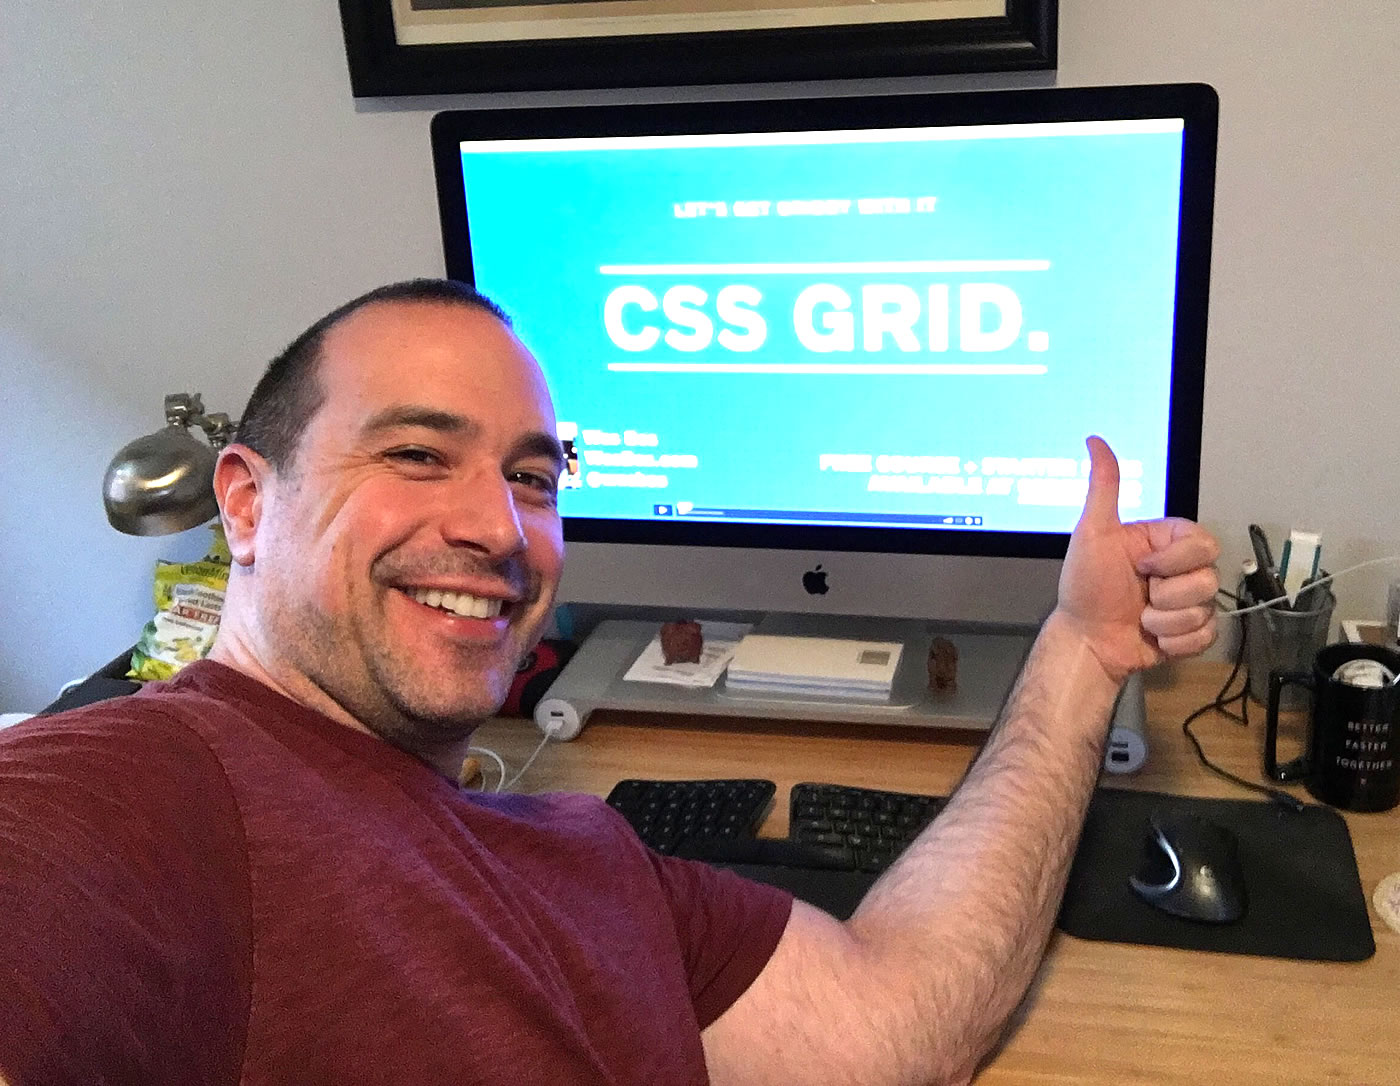 CSS Grid video course by Wes Bos, review by Ben Nadel.